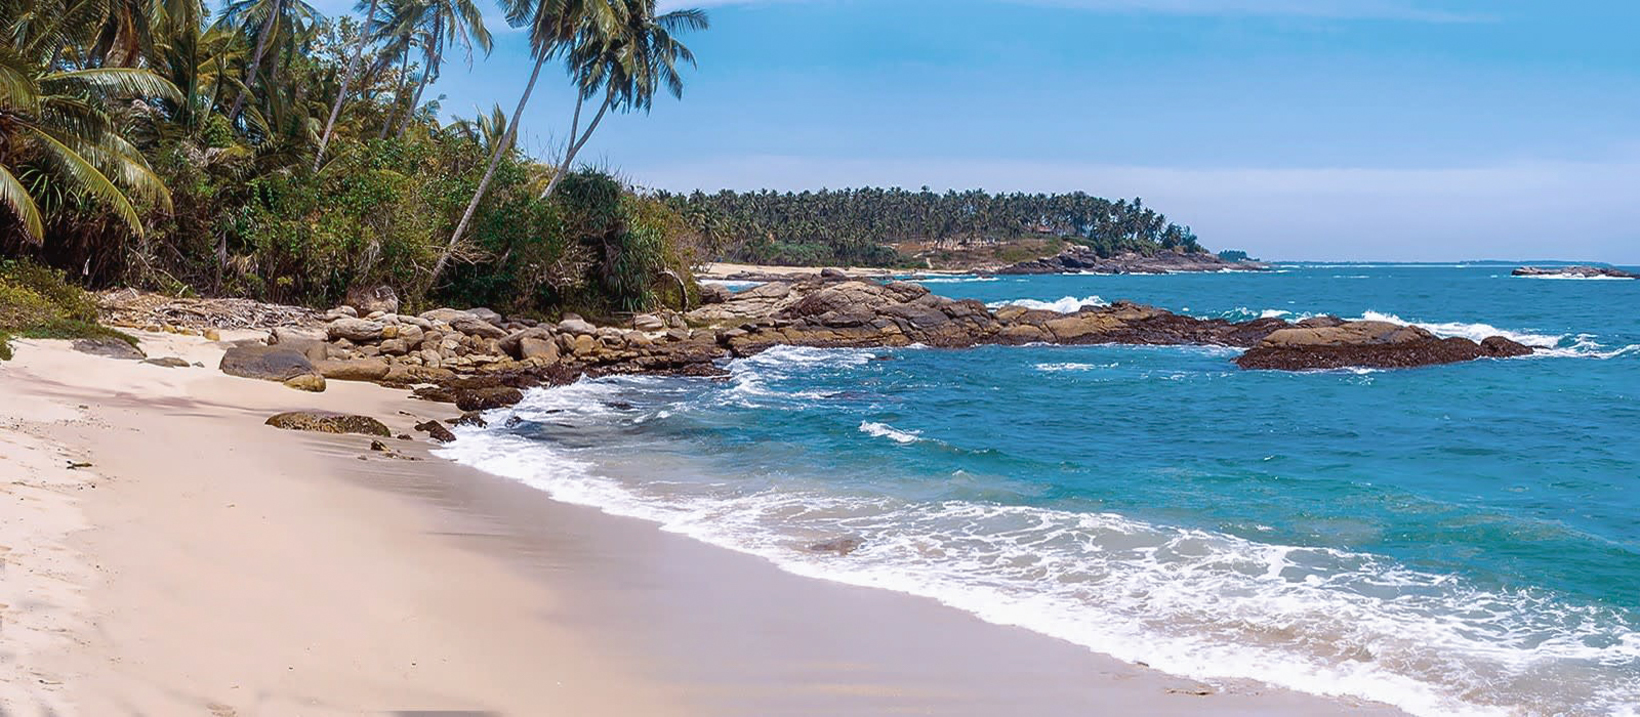 Things to do in Tangalle